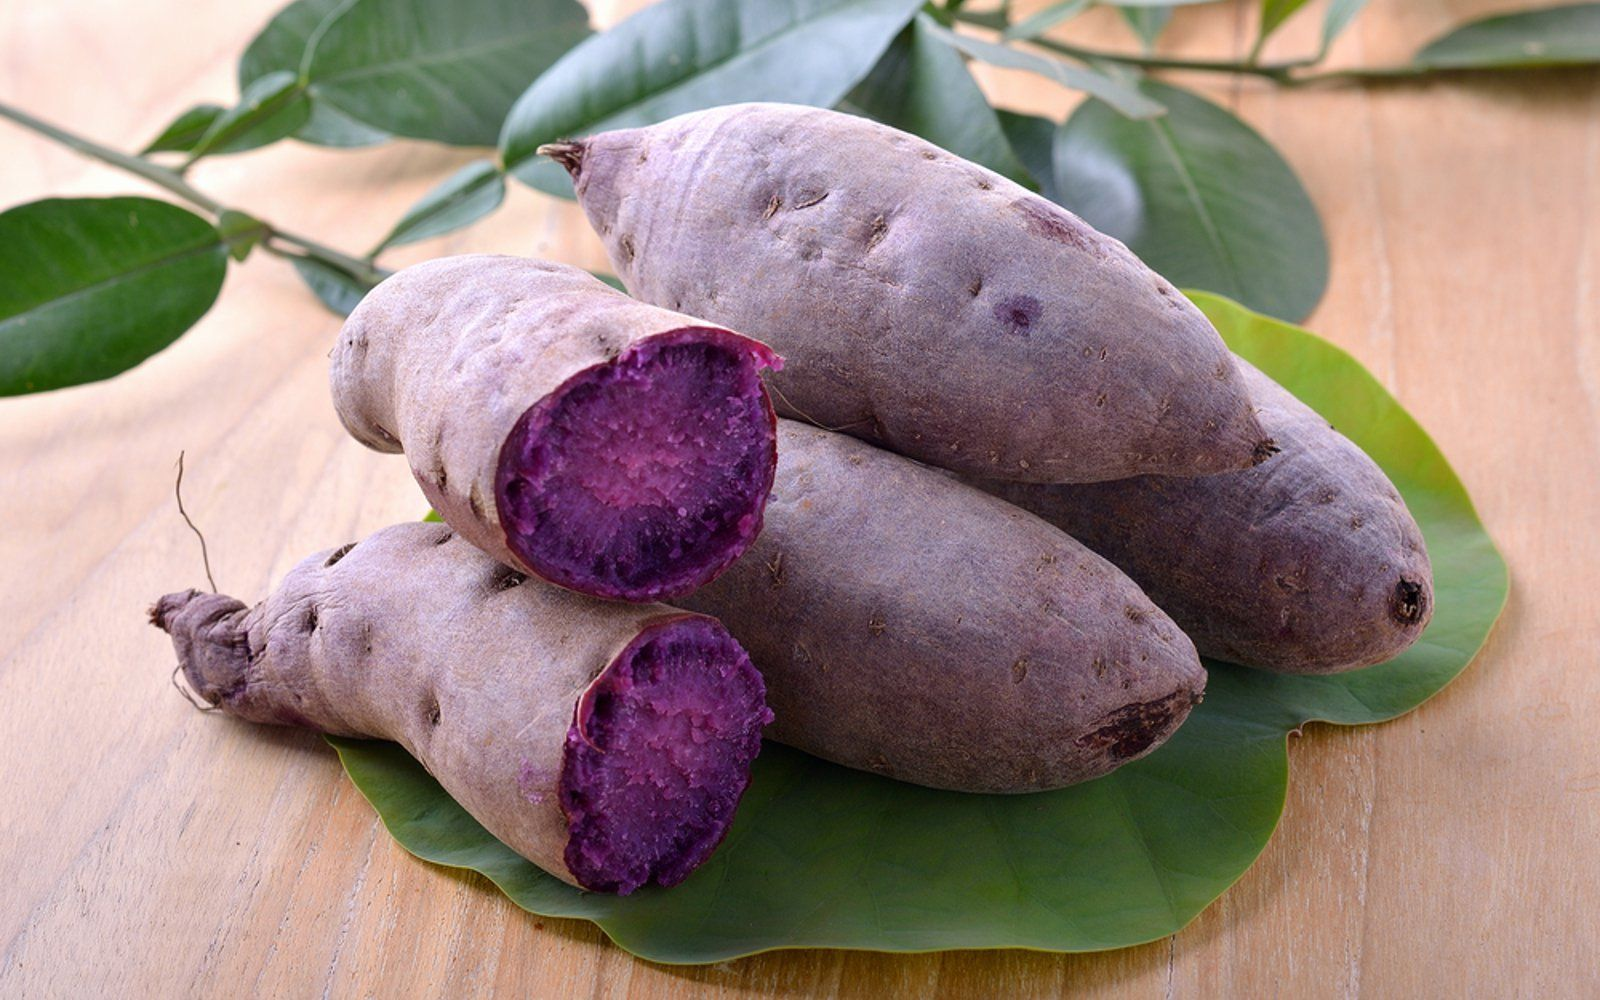 It's bright, it's purple, and it's turning desserts purple in restaurants all over the world. Is it purple cauliflower? Nope, it's ube, a purple yam that's the Philippines' answer to sweet potatoes. …